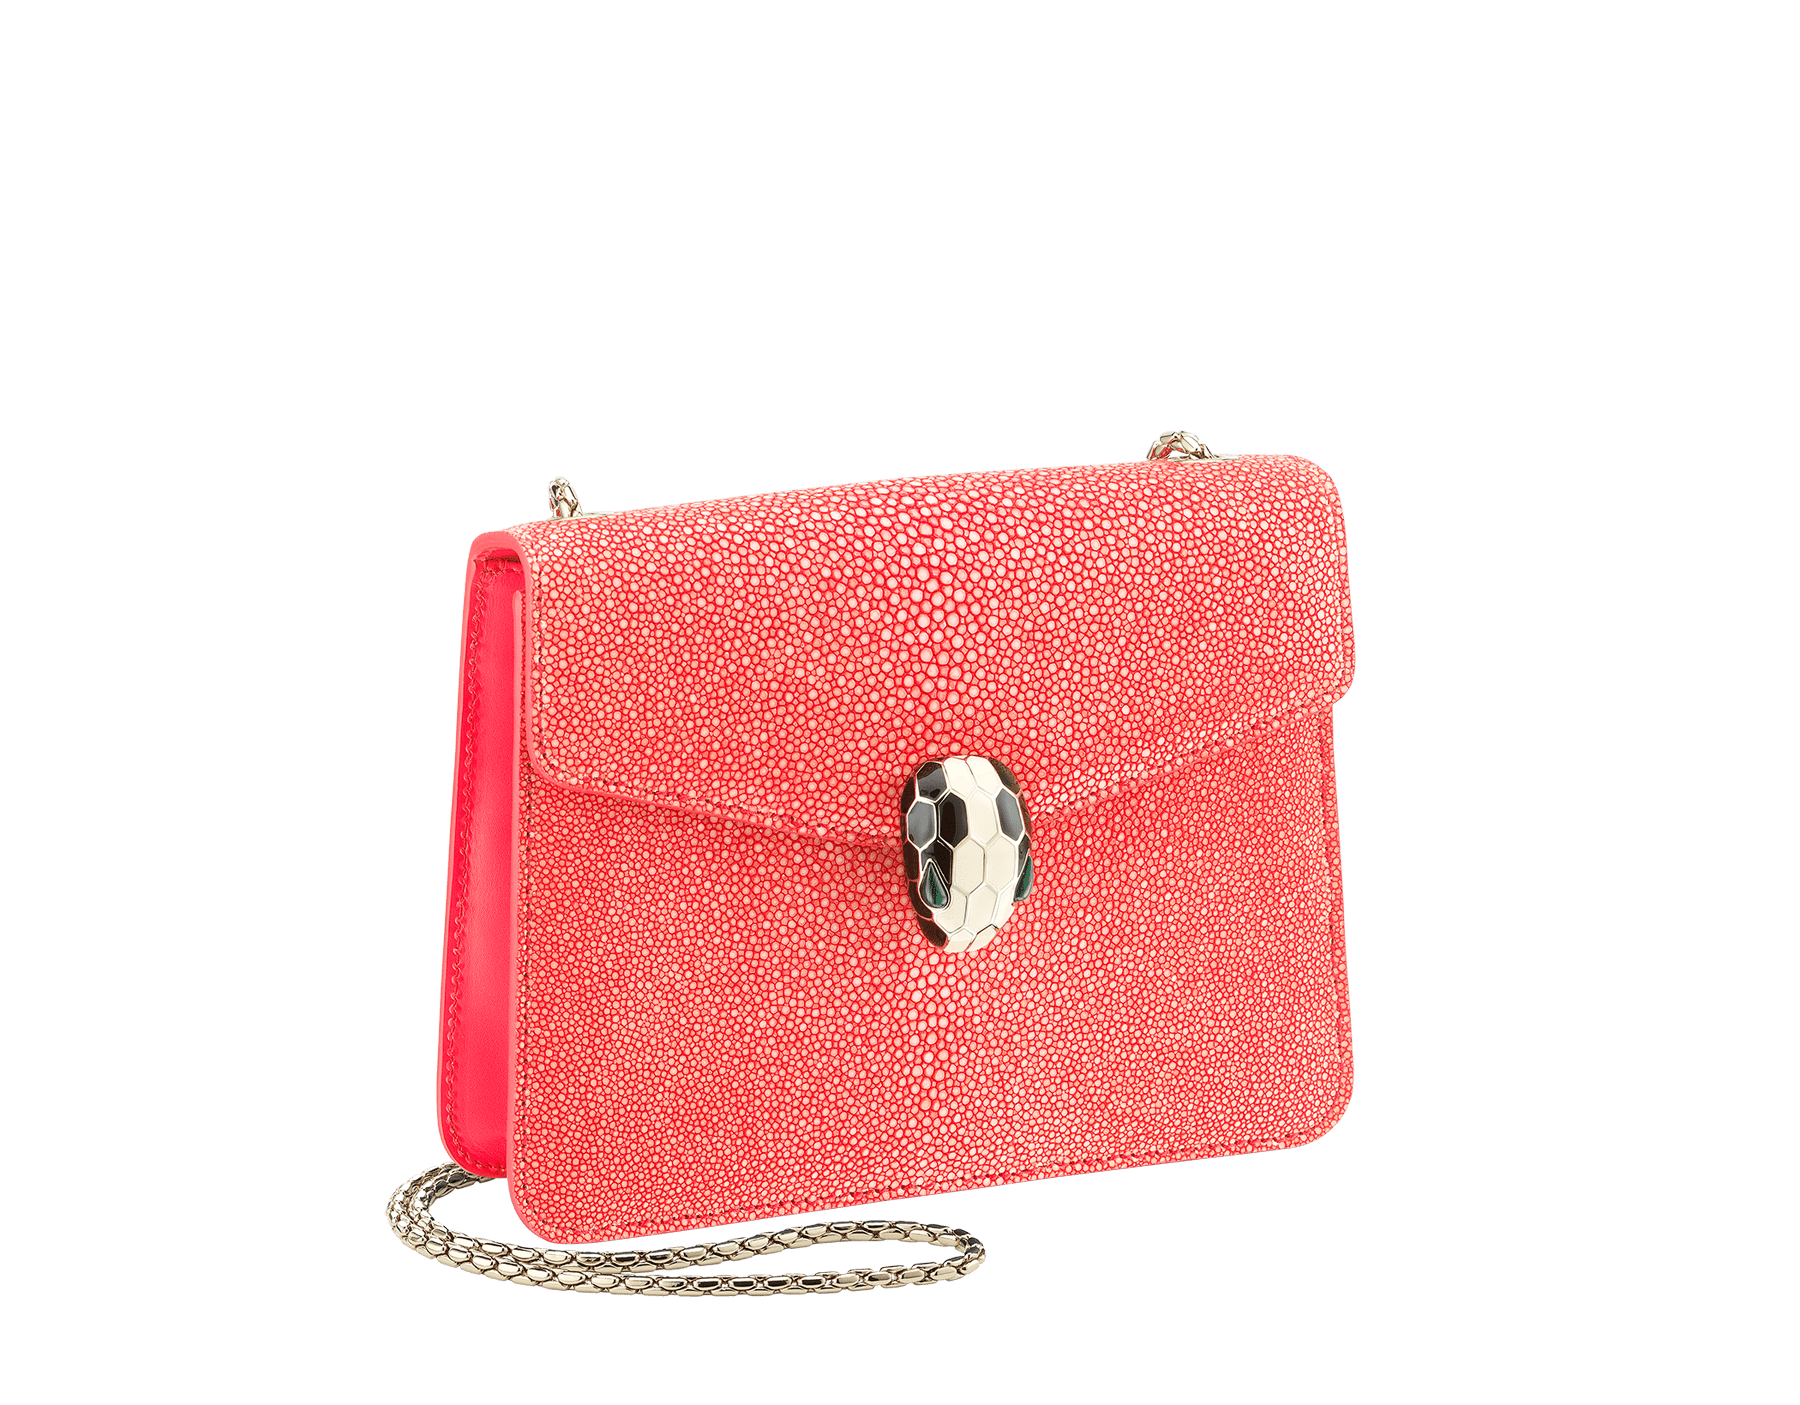 """Serpenti Forever"" crossbody bag with a multicolored ""Multishaded"" galuchat skin body and berry tourmaline calf leather sides. Iconic snakehead closure in dark ruthenium plated brass enriched with berry tourmaline and black enamel, and black onyx eyes. 422-FG image 2"